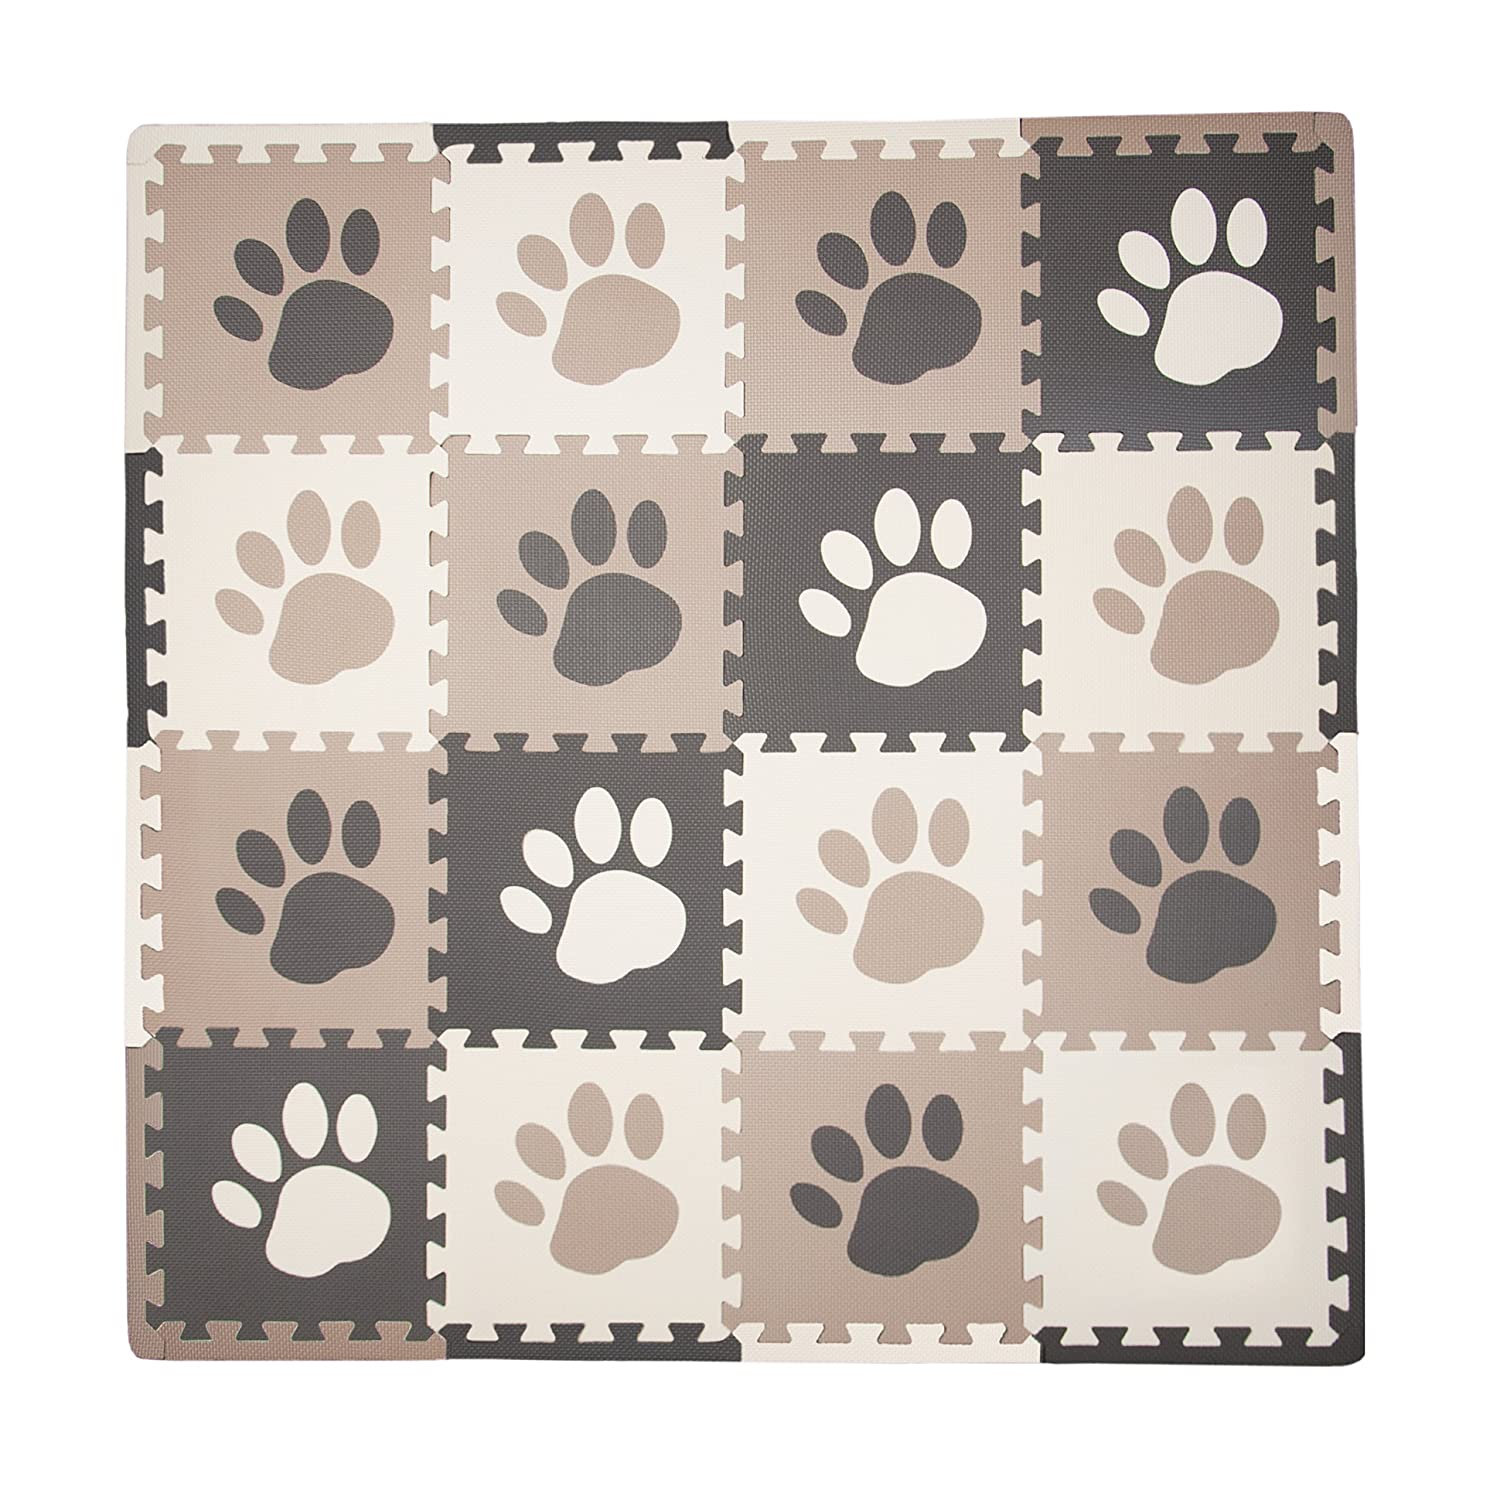 Tadpoles 16 Sq Ft Pawprint Playmat Set, Brown Sleeping Partners cpmsev110